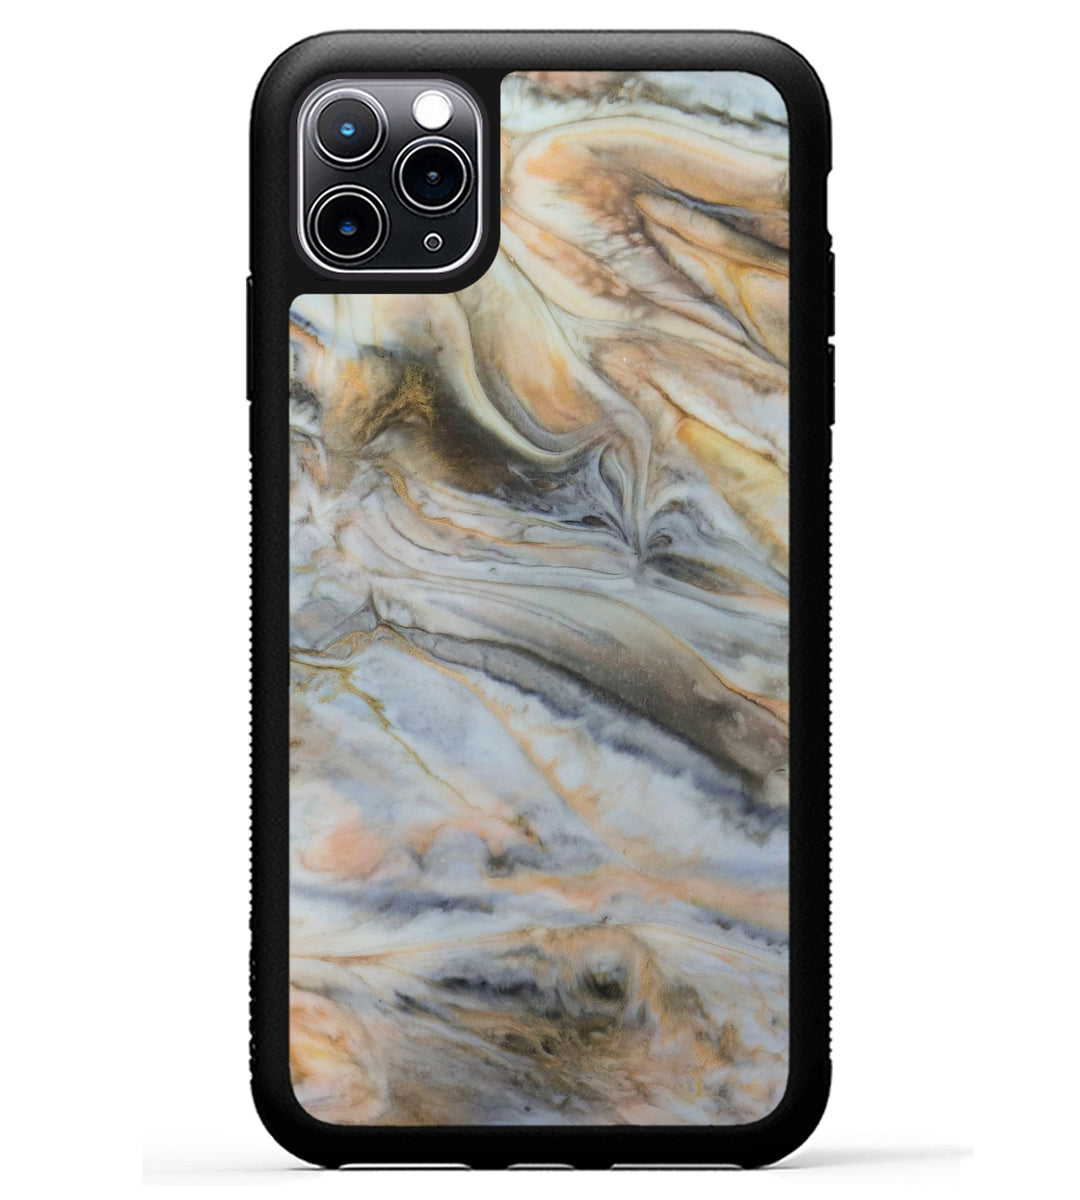 iPhone 11 Pro Max ResinArt Phone Case - Blondy (Black & White, 347540)